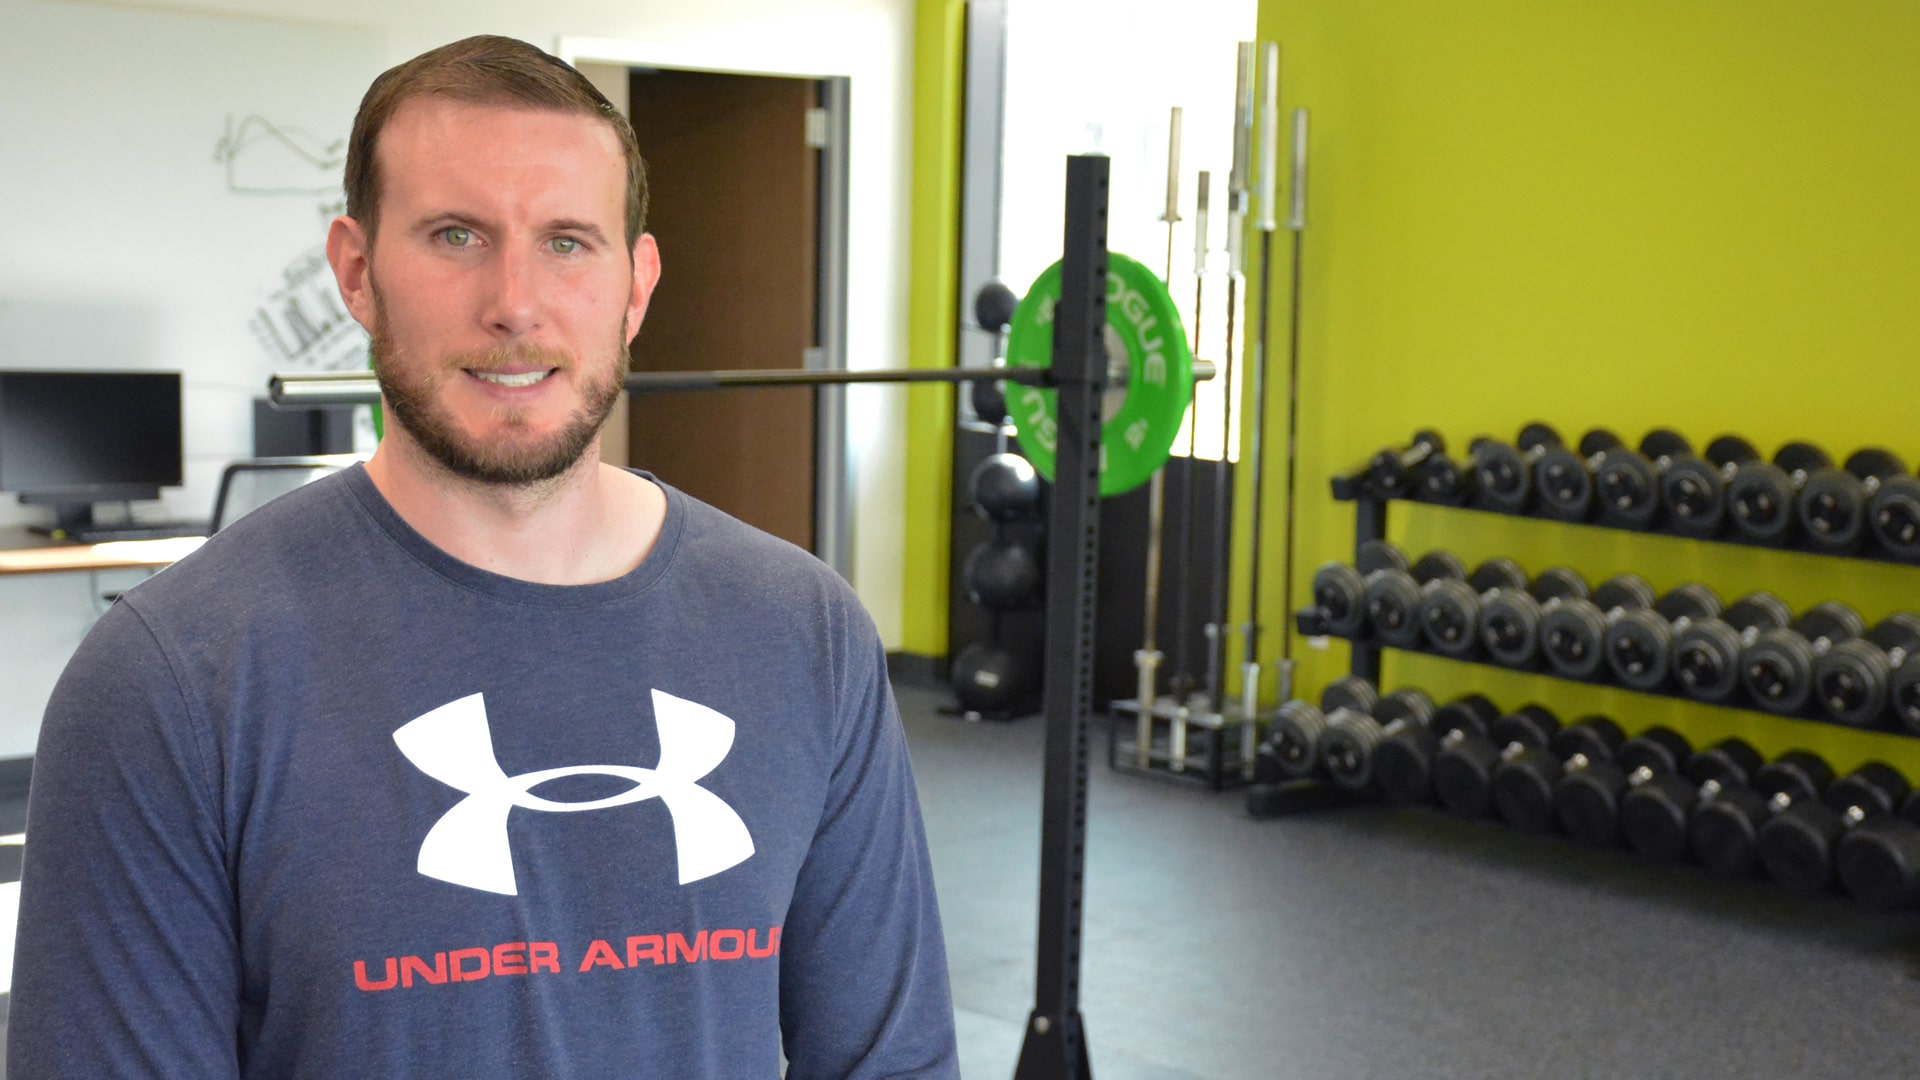 Veteran trains for new career in exercise science at UHCL